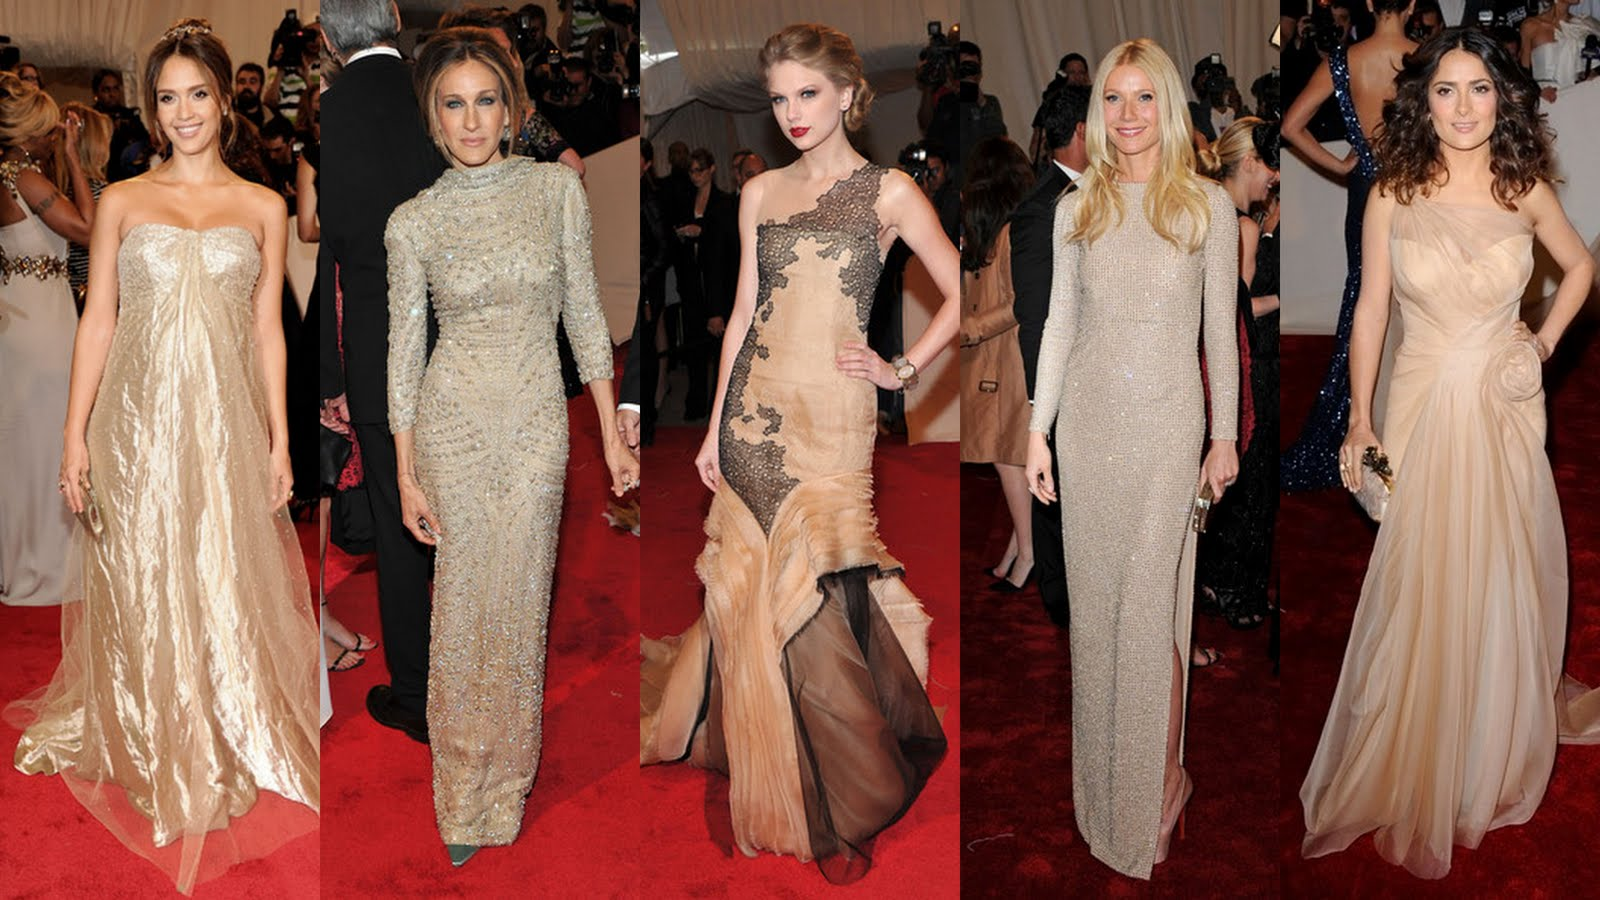 met+gala+4 Sarah Jessica Parker pays tribute to McQueen in an exquisite long sleeved ...